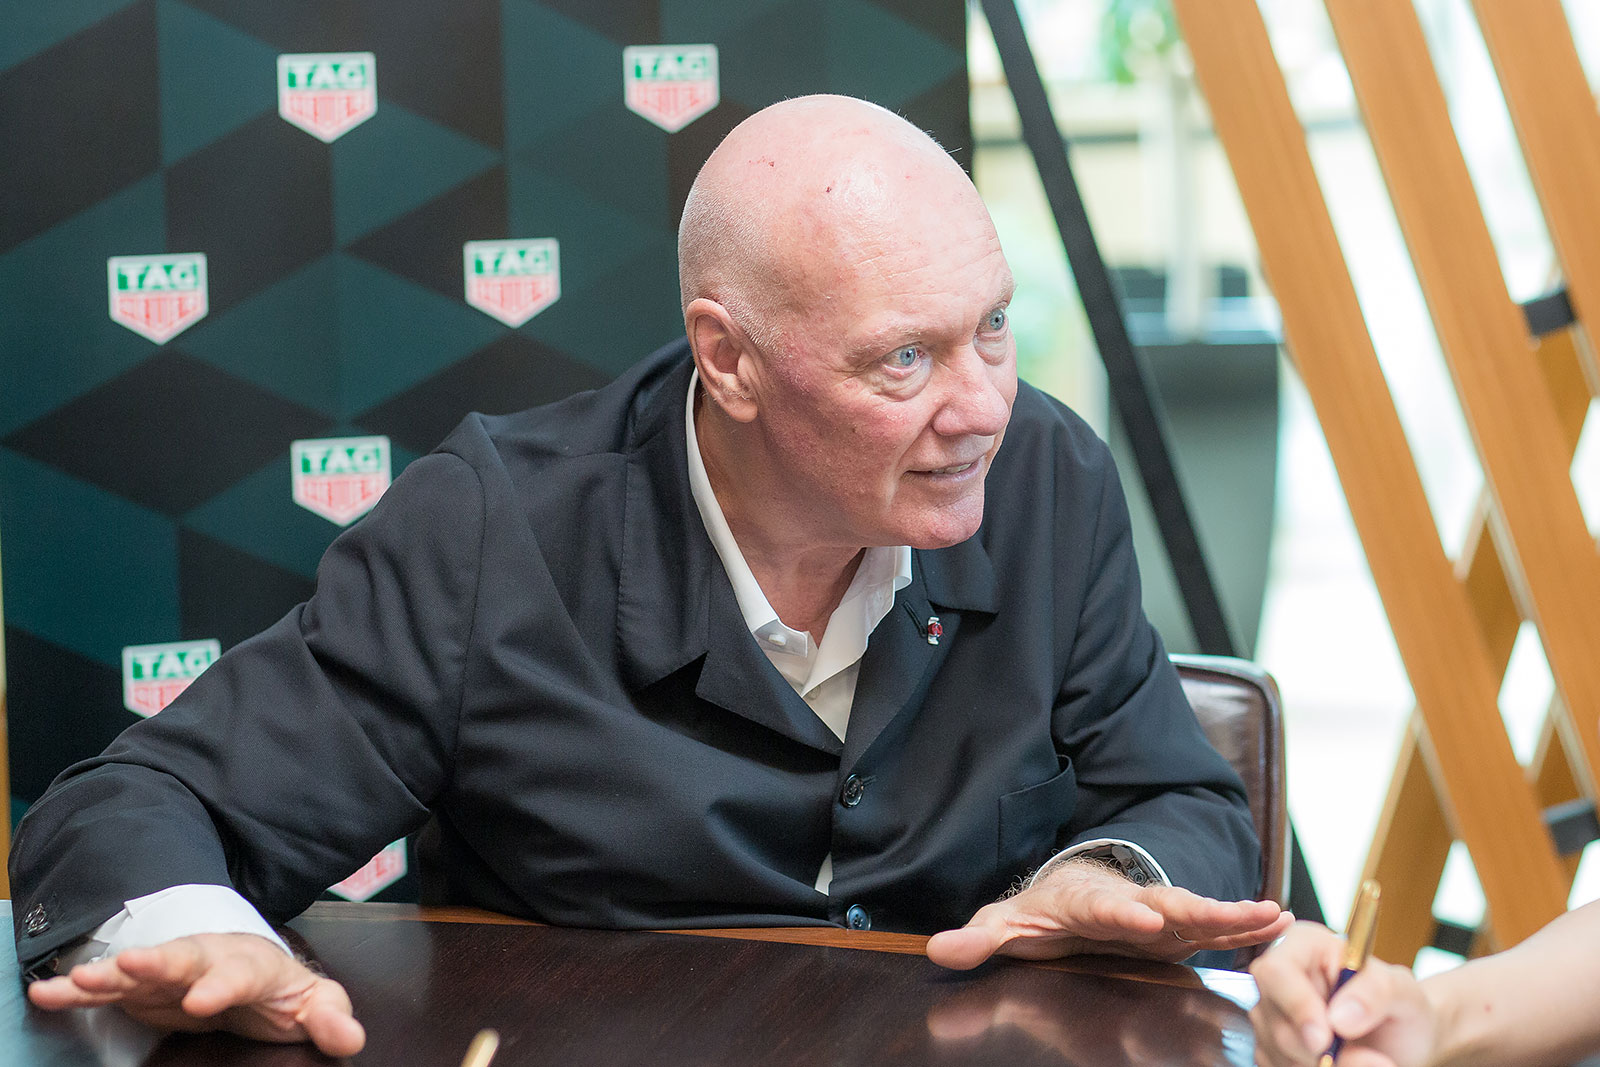 Jean-Claude Biver TAG Heuer interview Nov 2016-2